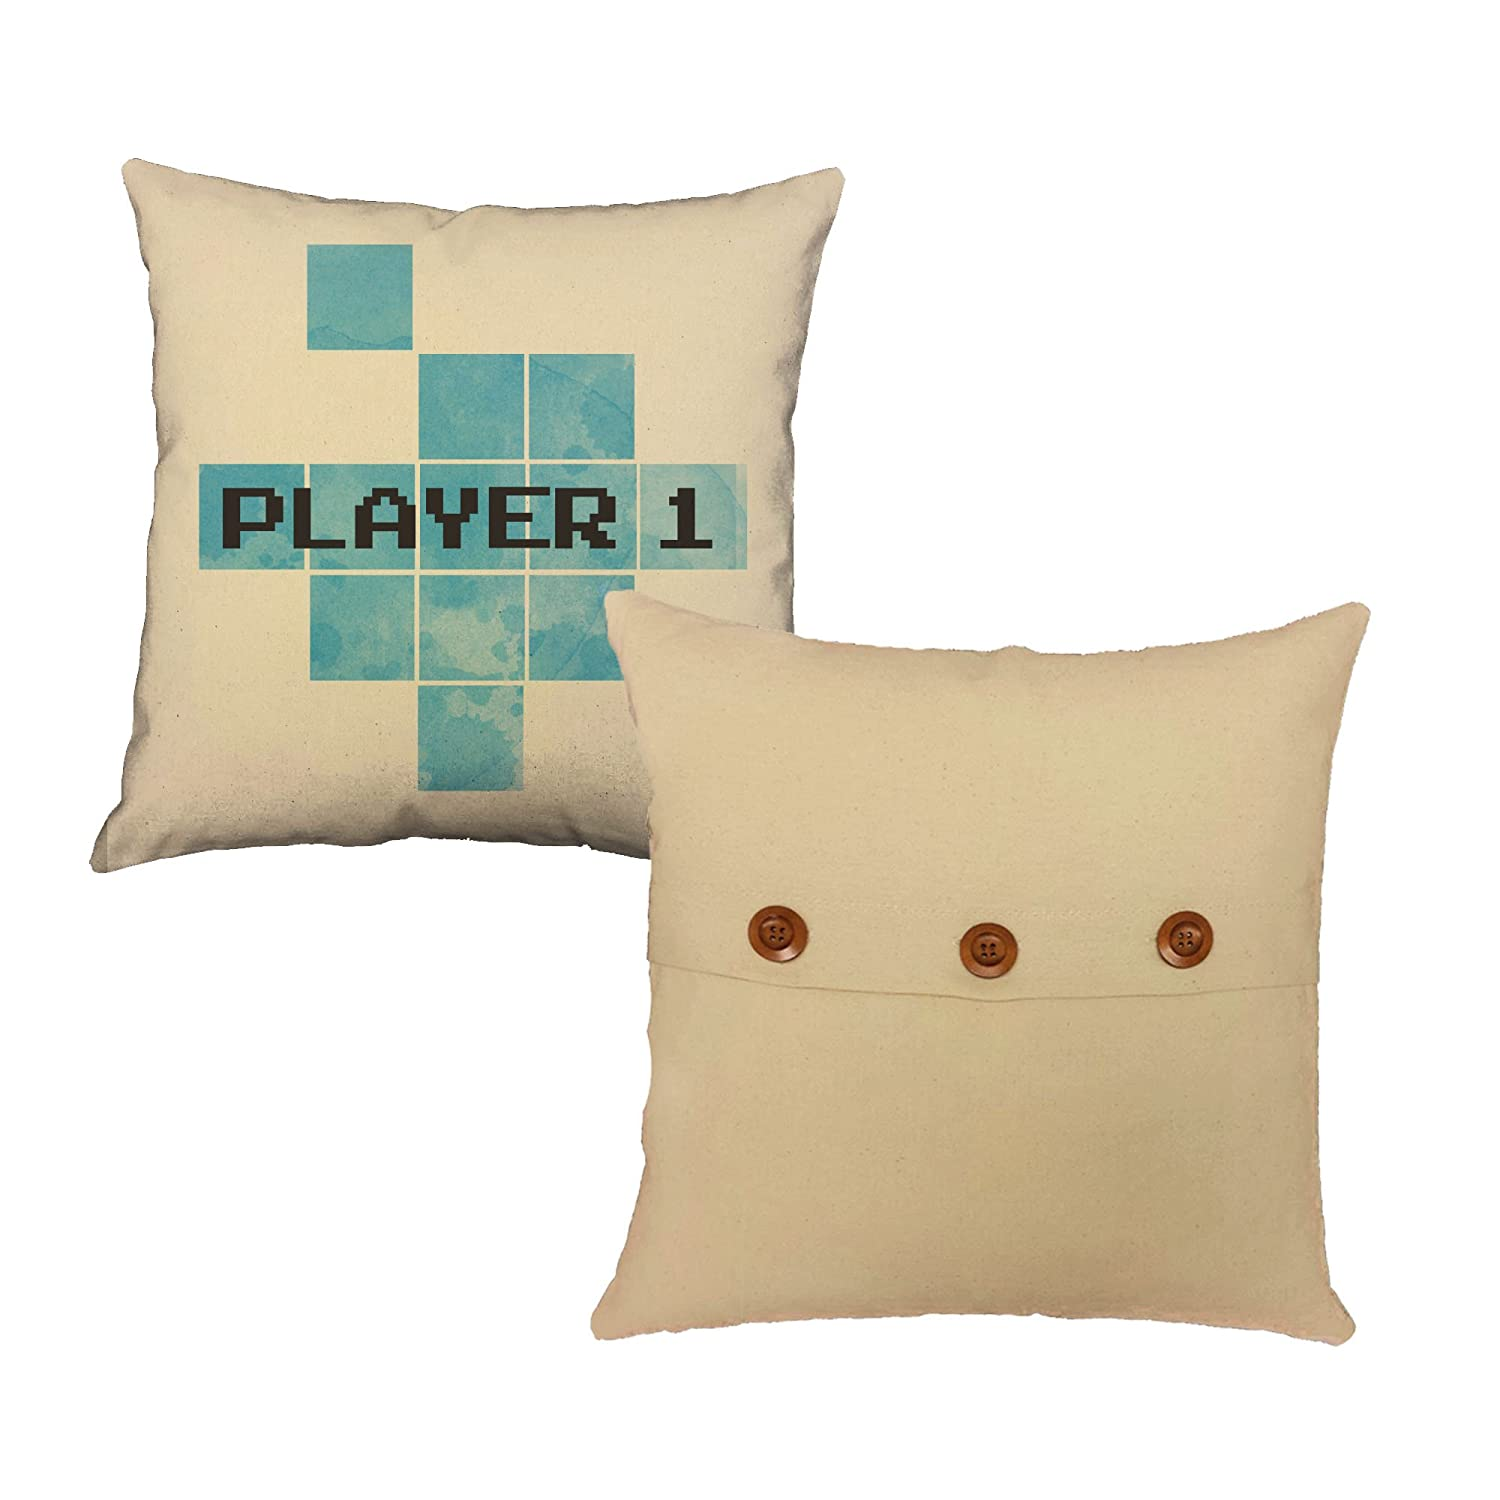 2745cf56b Amazon.com: RoomCraft Set of 2 Player One Player Two Throw Pillows 14x14  Square Natural Cotton Video Game Couple Cushions: Home & Kitchen